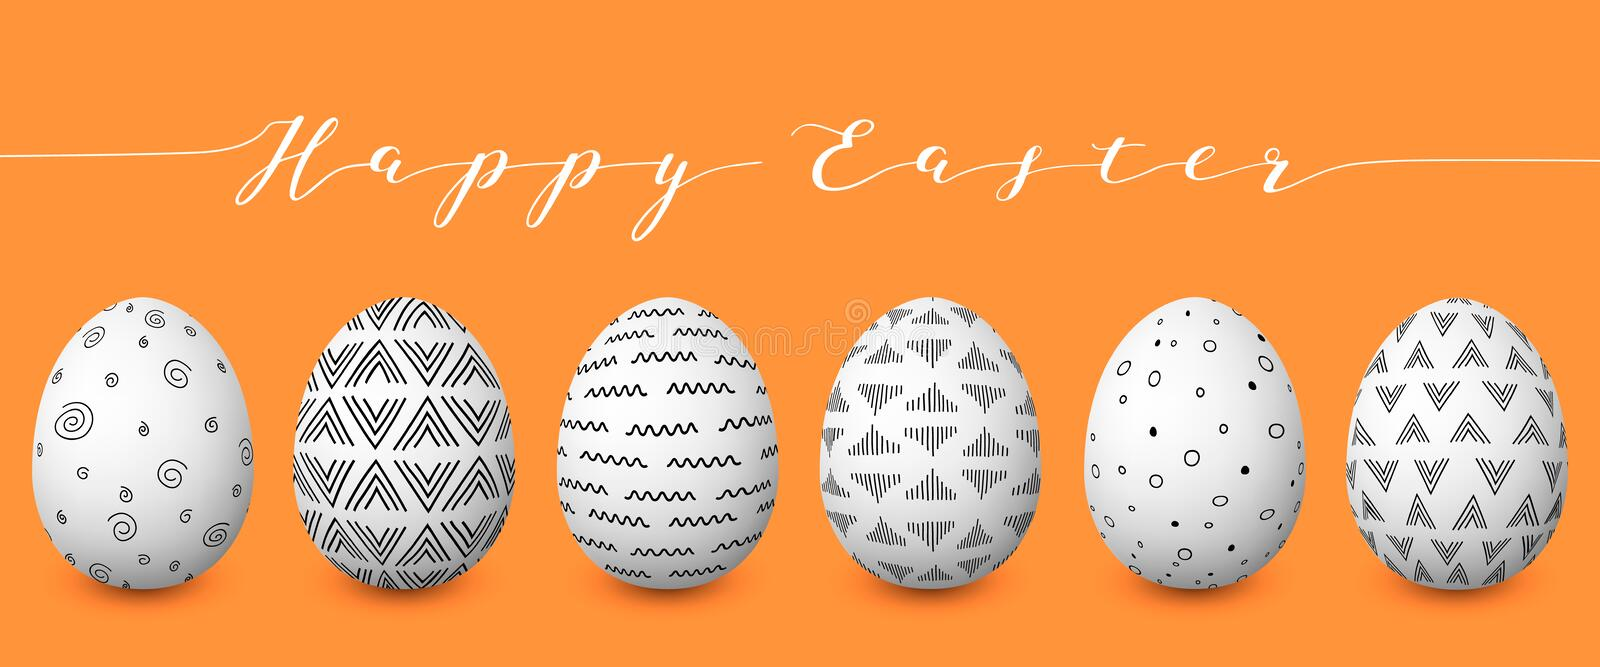 Happy Easter. Set of colorful Easter eggs with different simple textures on golden background. royalty free illustration